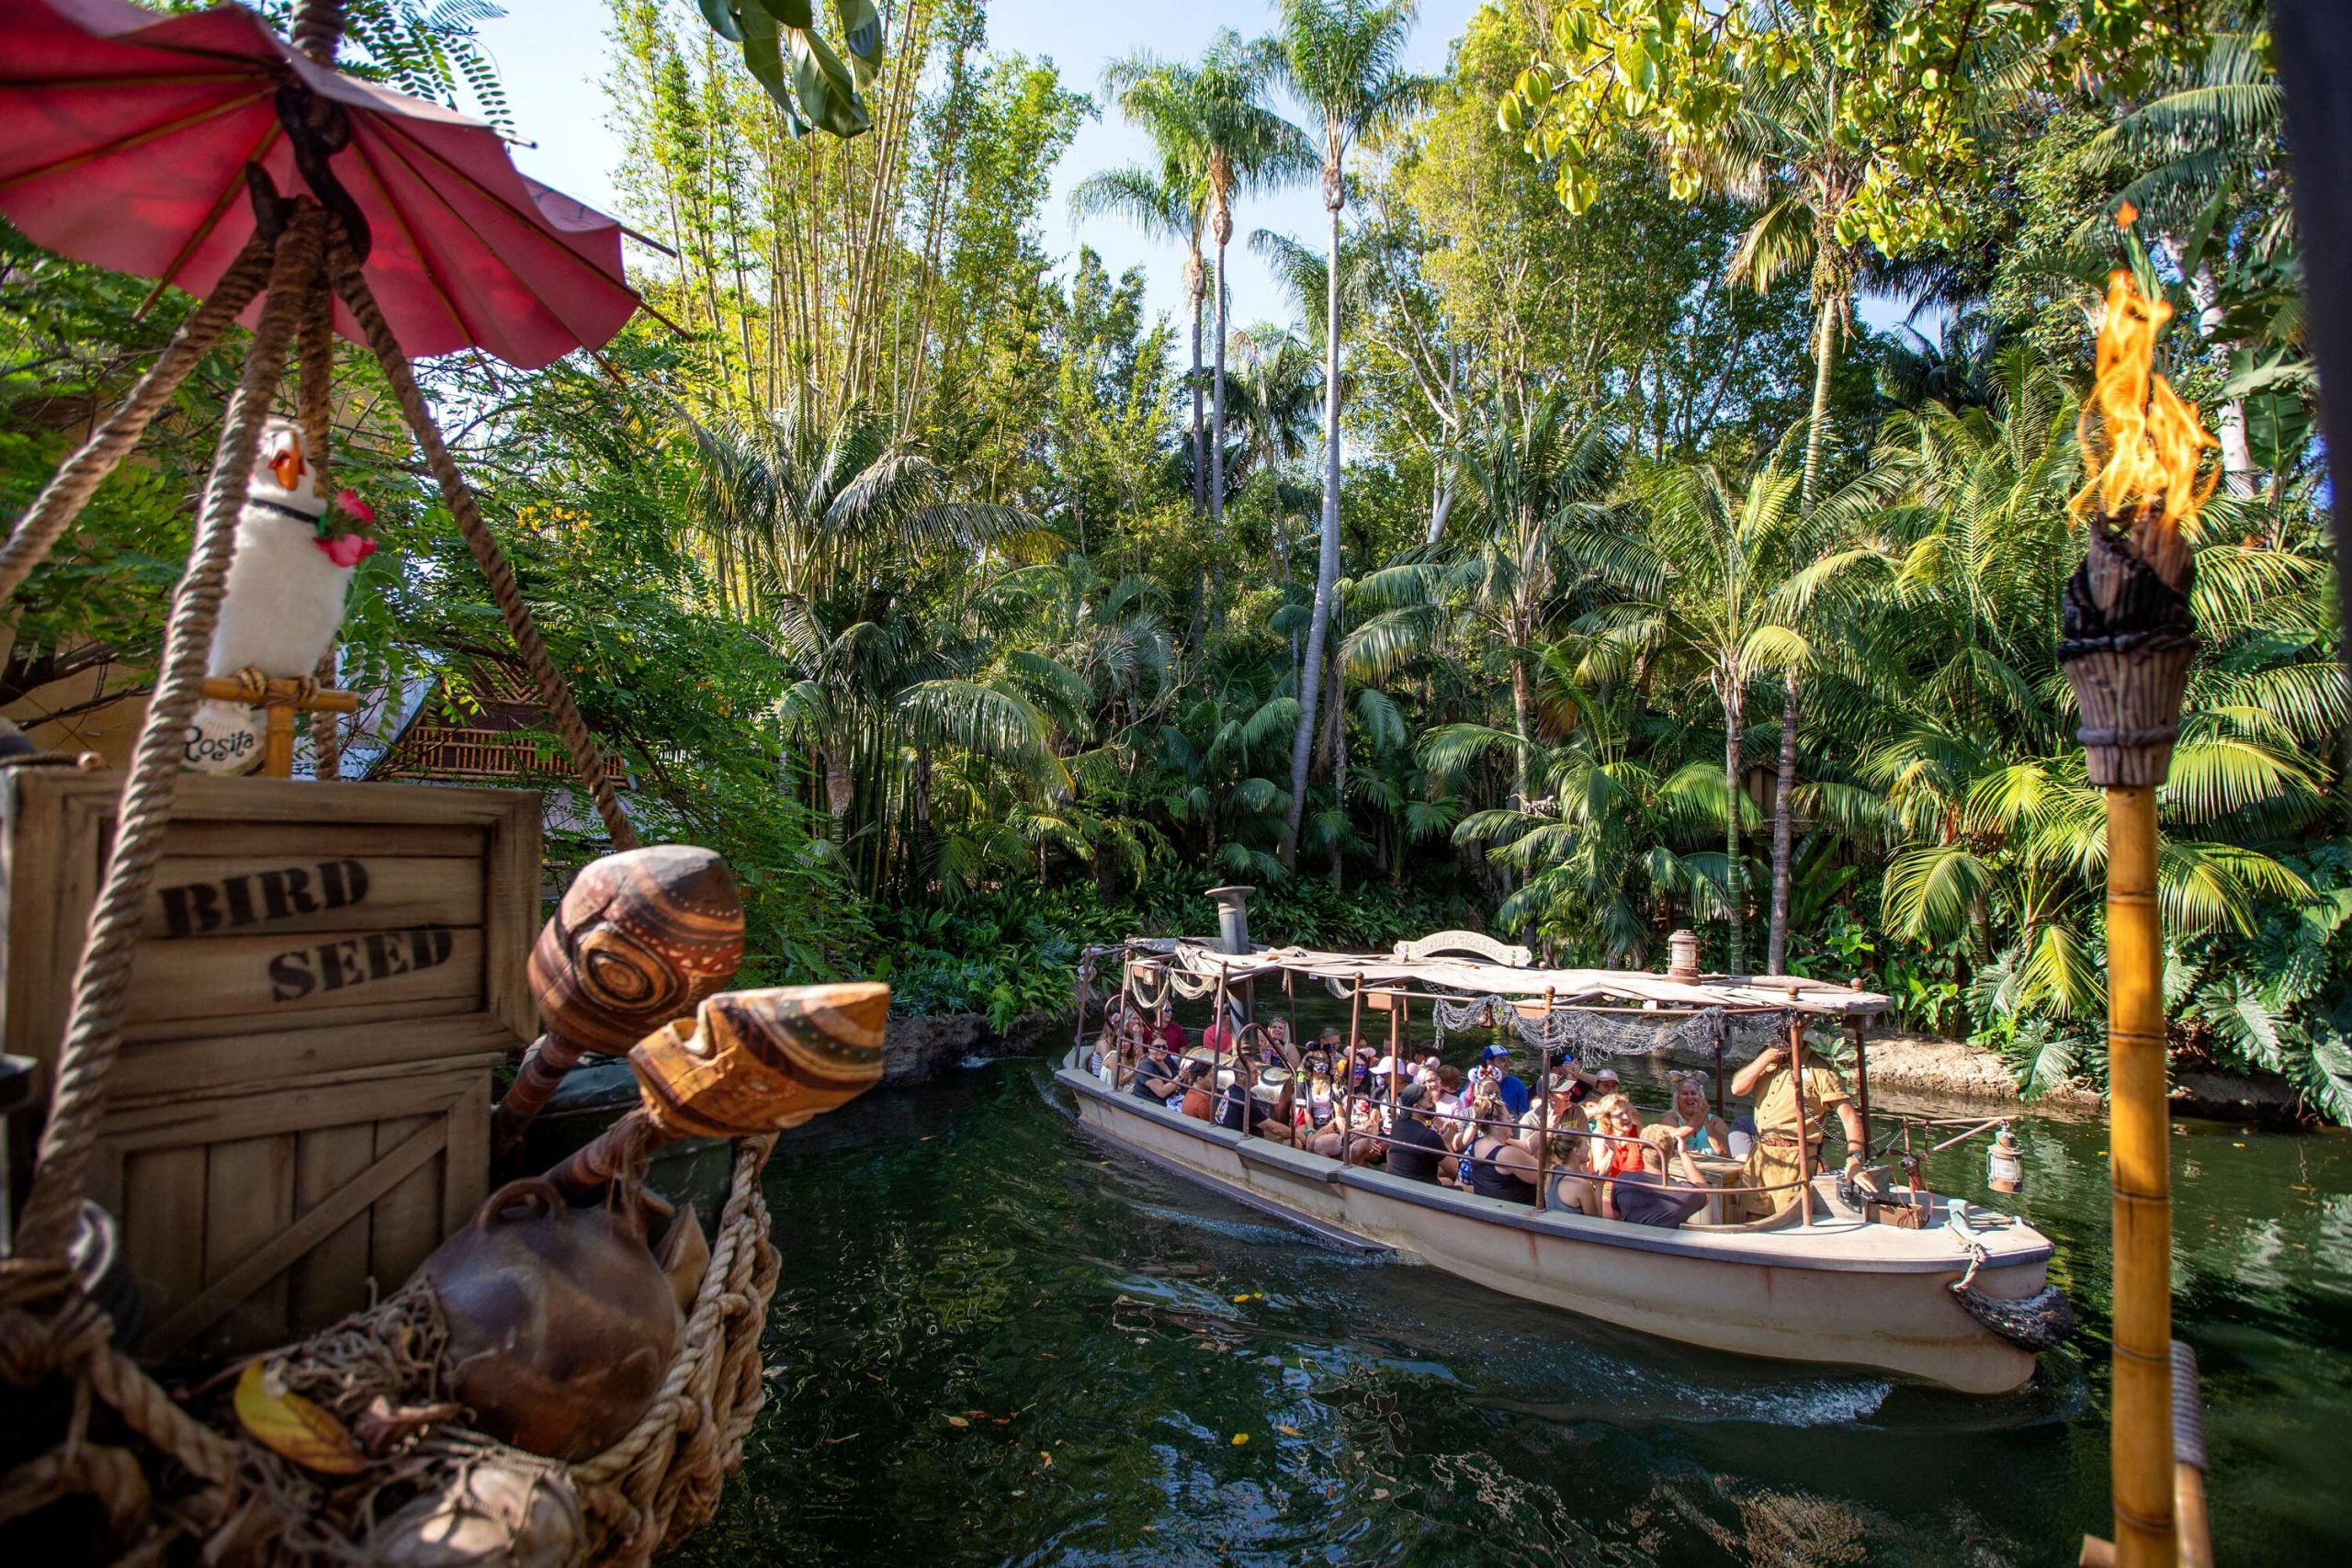 <i>Allen J Schaben/Los Angeles Time/Shutterstock</i><br/>Jungle Cruise will officially reopen in Disneyland on July 16.